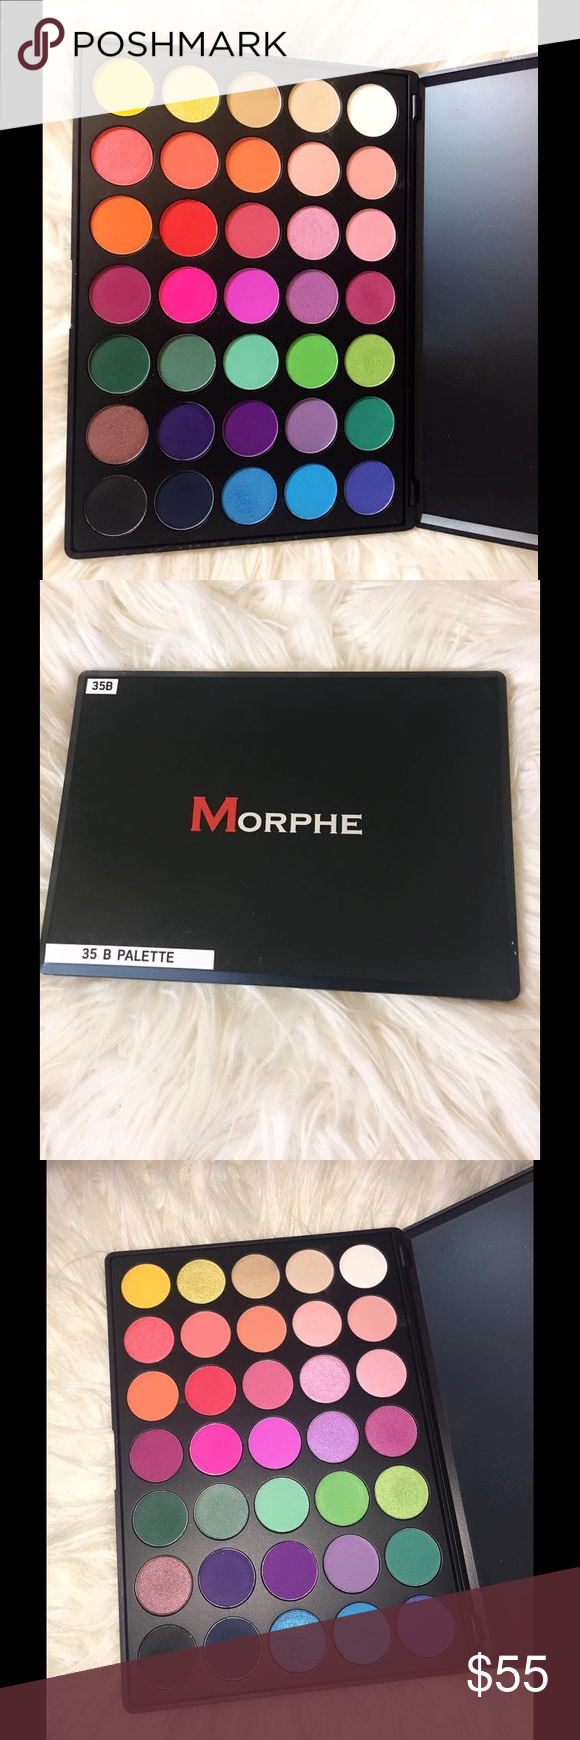 Morphe 35b Palette Authentic Sold Out Authentic Guaranteed Cheaper If Paid Thru Pypal Plus Free Shipping Morphe Mak Eyeshadow Makeup Eyeshadow Clothes Design Morphe 35f fall into frost eyeshadow palette *read*. pinterest